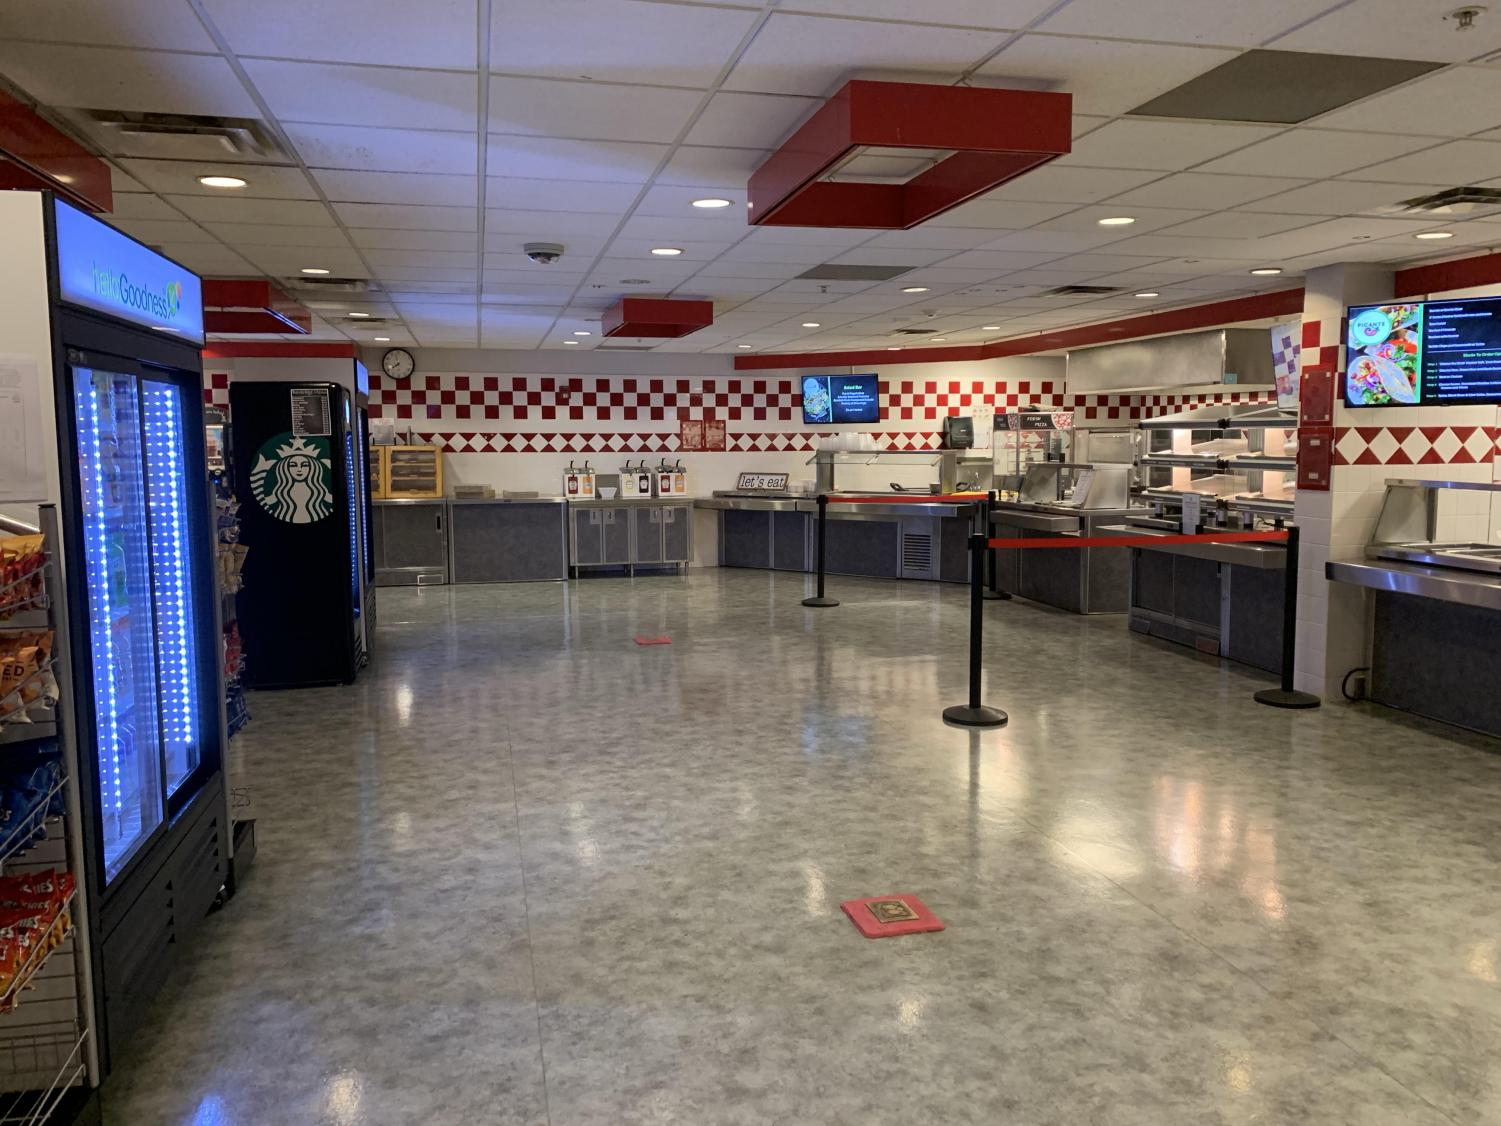 The new layout of the Questfood food service at West